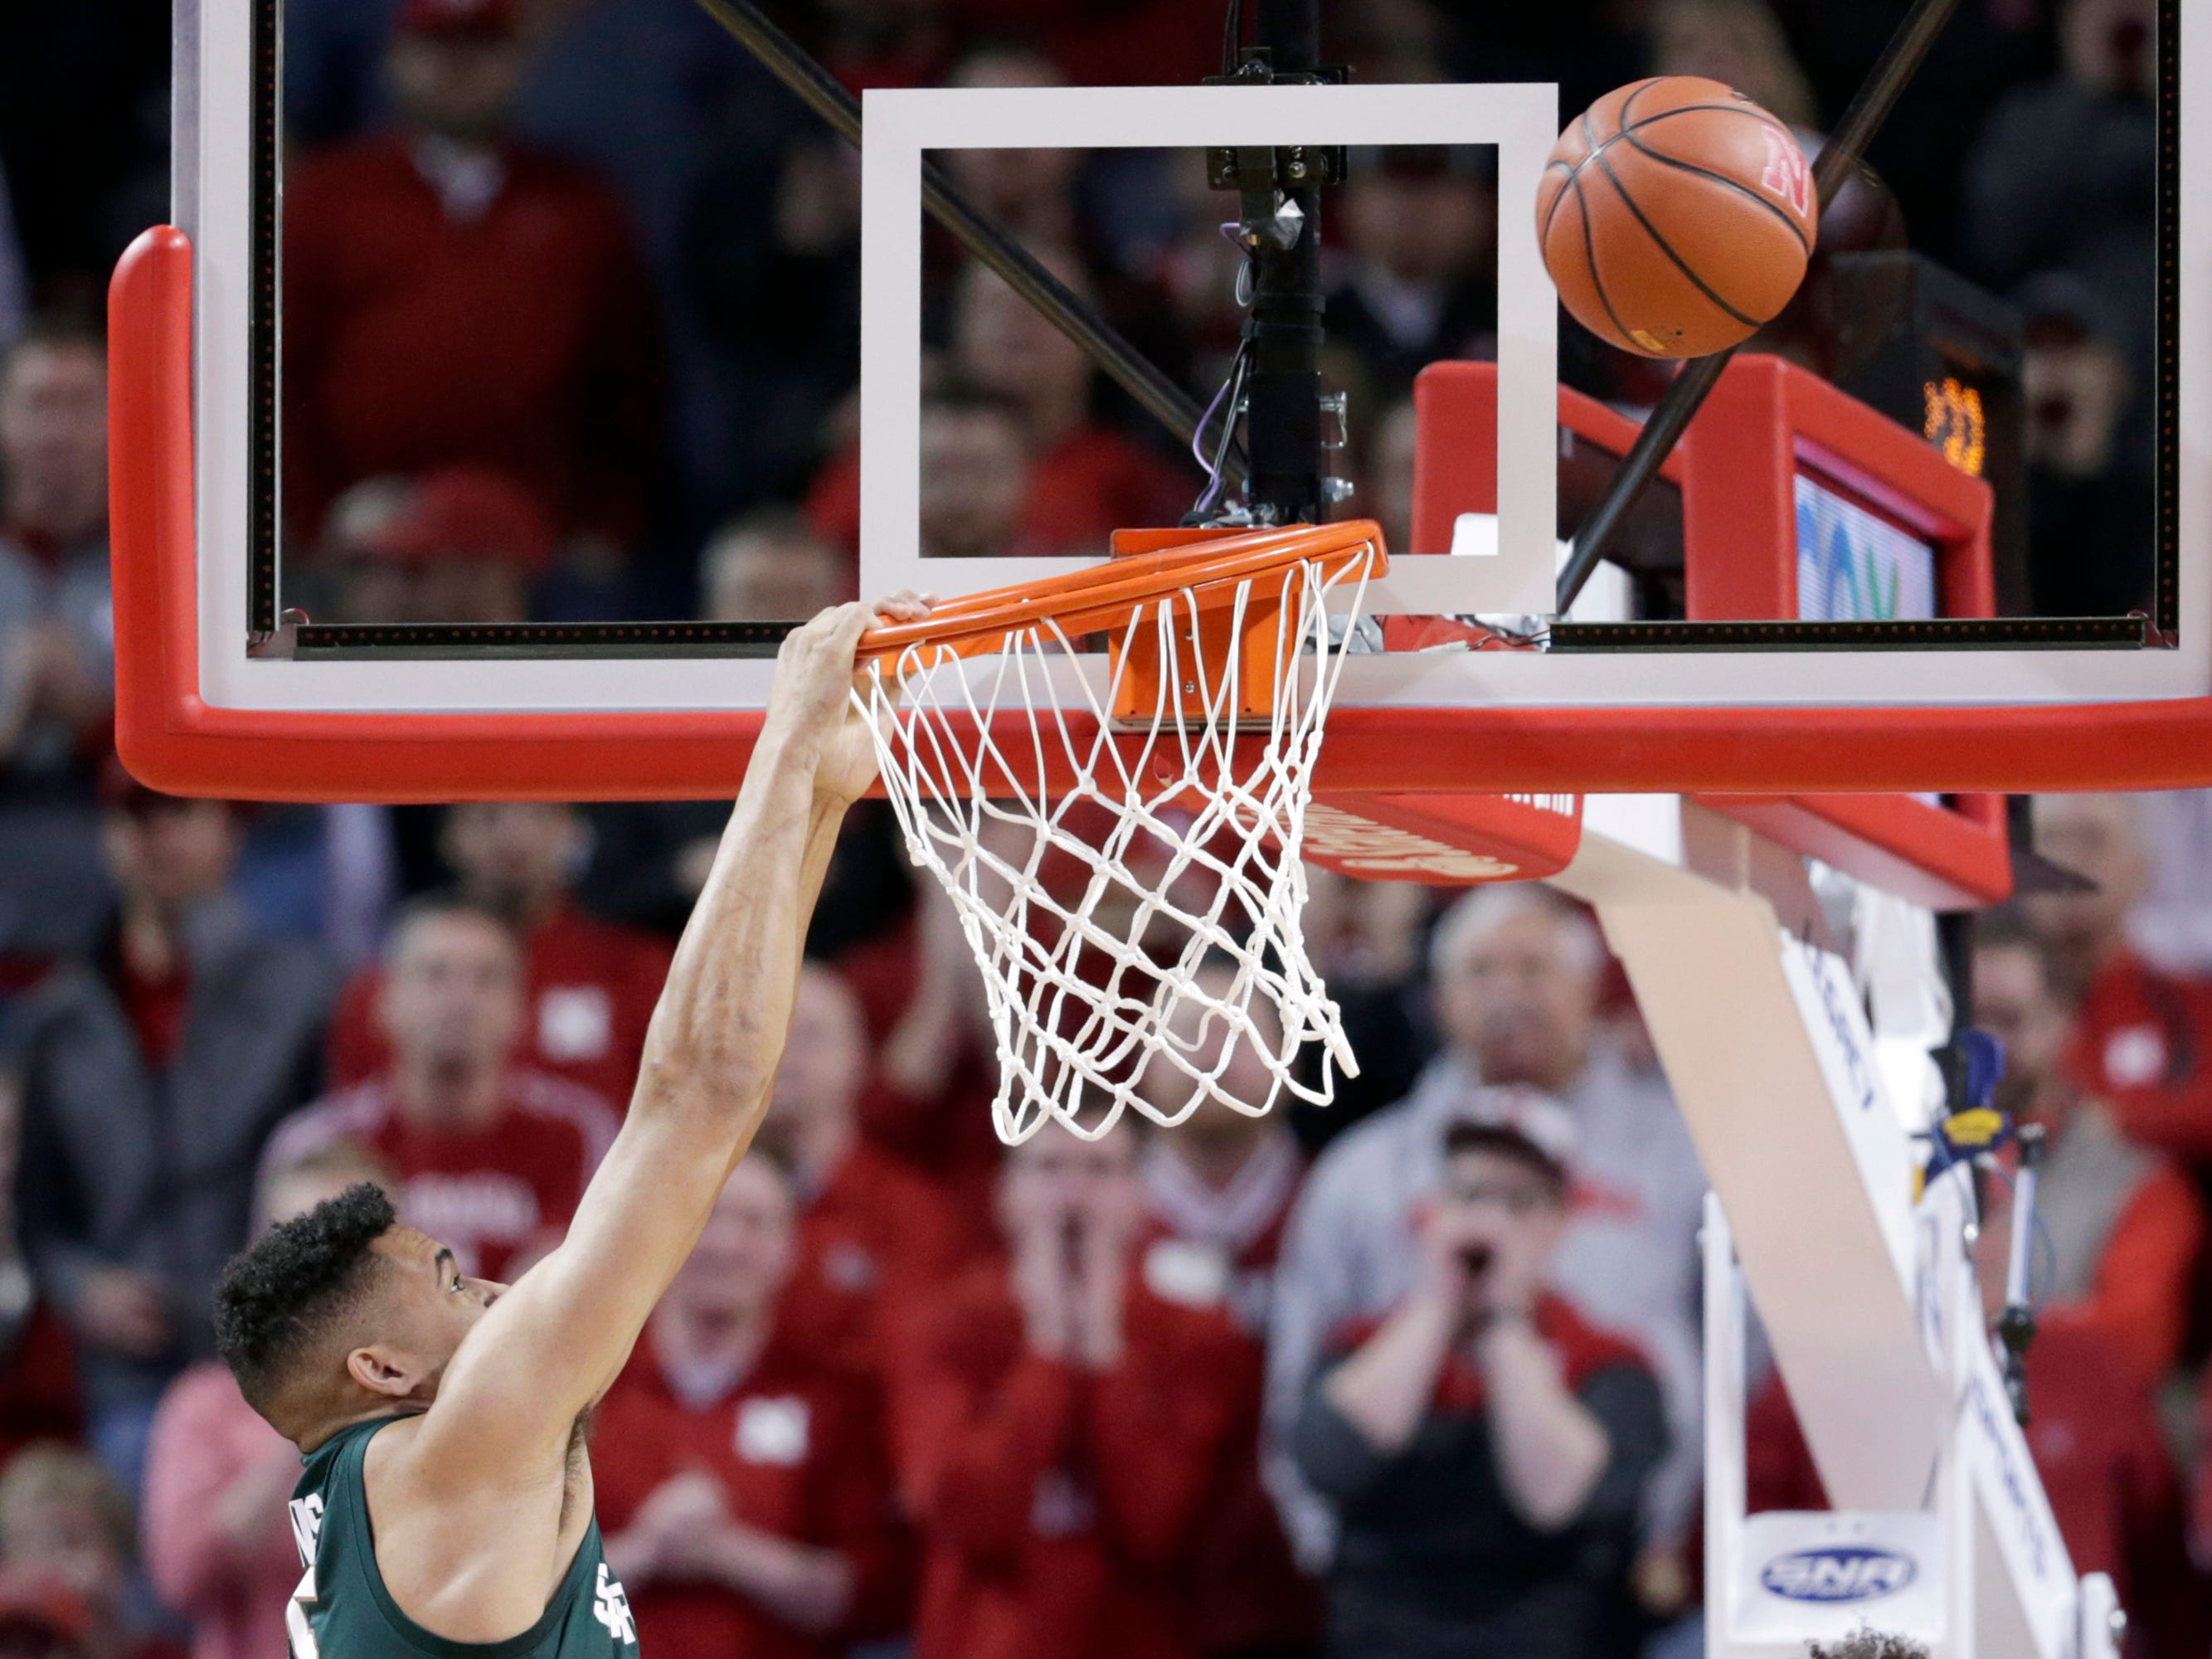 Michigan State's Kenny Goins hangs on the rim after missing a dunk during the first half of an NCAA college basketball game against Nebraska in Lincoln, Neb., Thursday, Jan. 17, 2019.